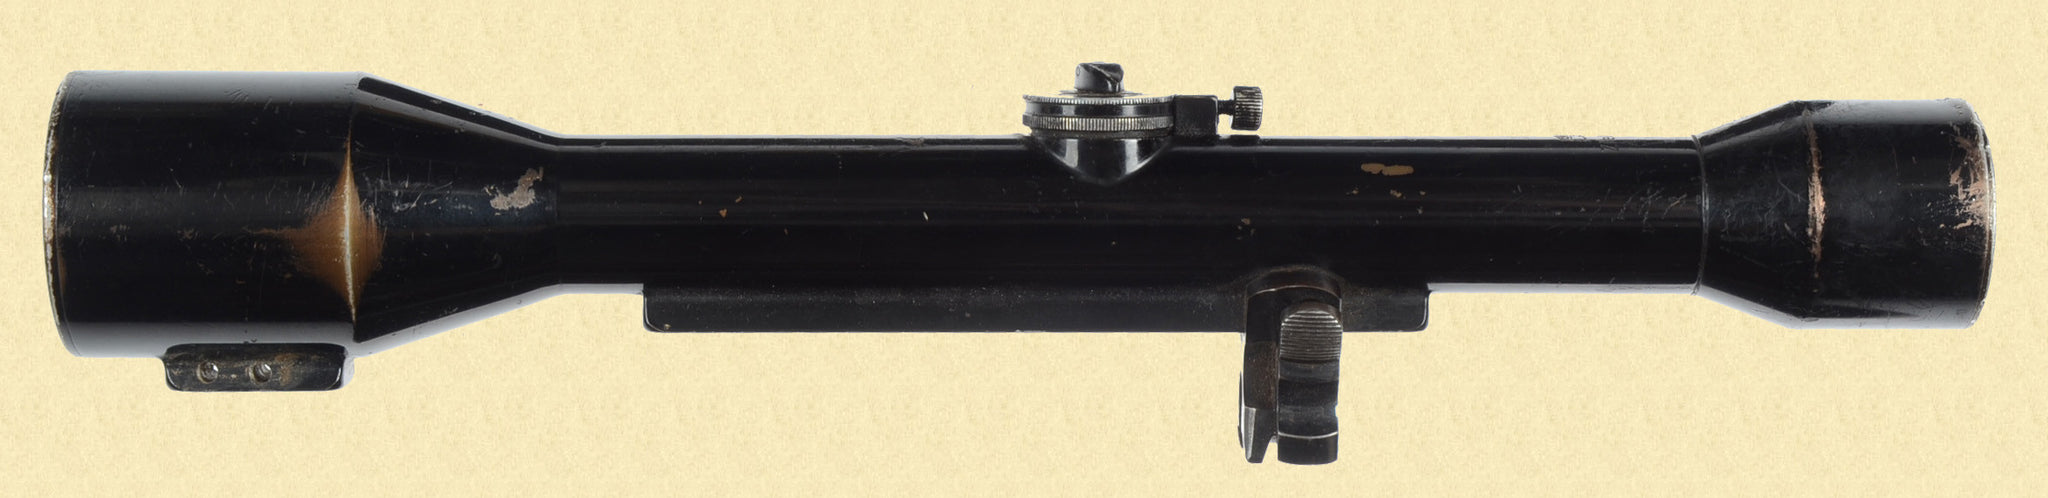 CARL ZIESS RIFLE SCOPE